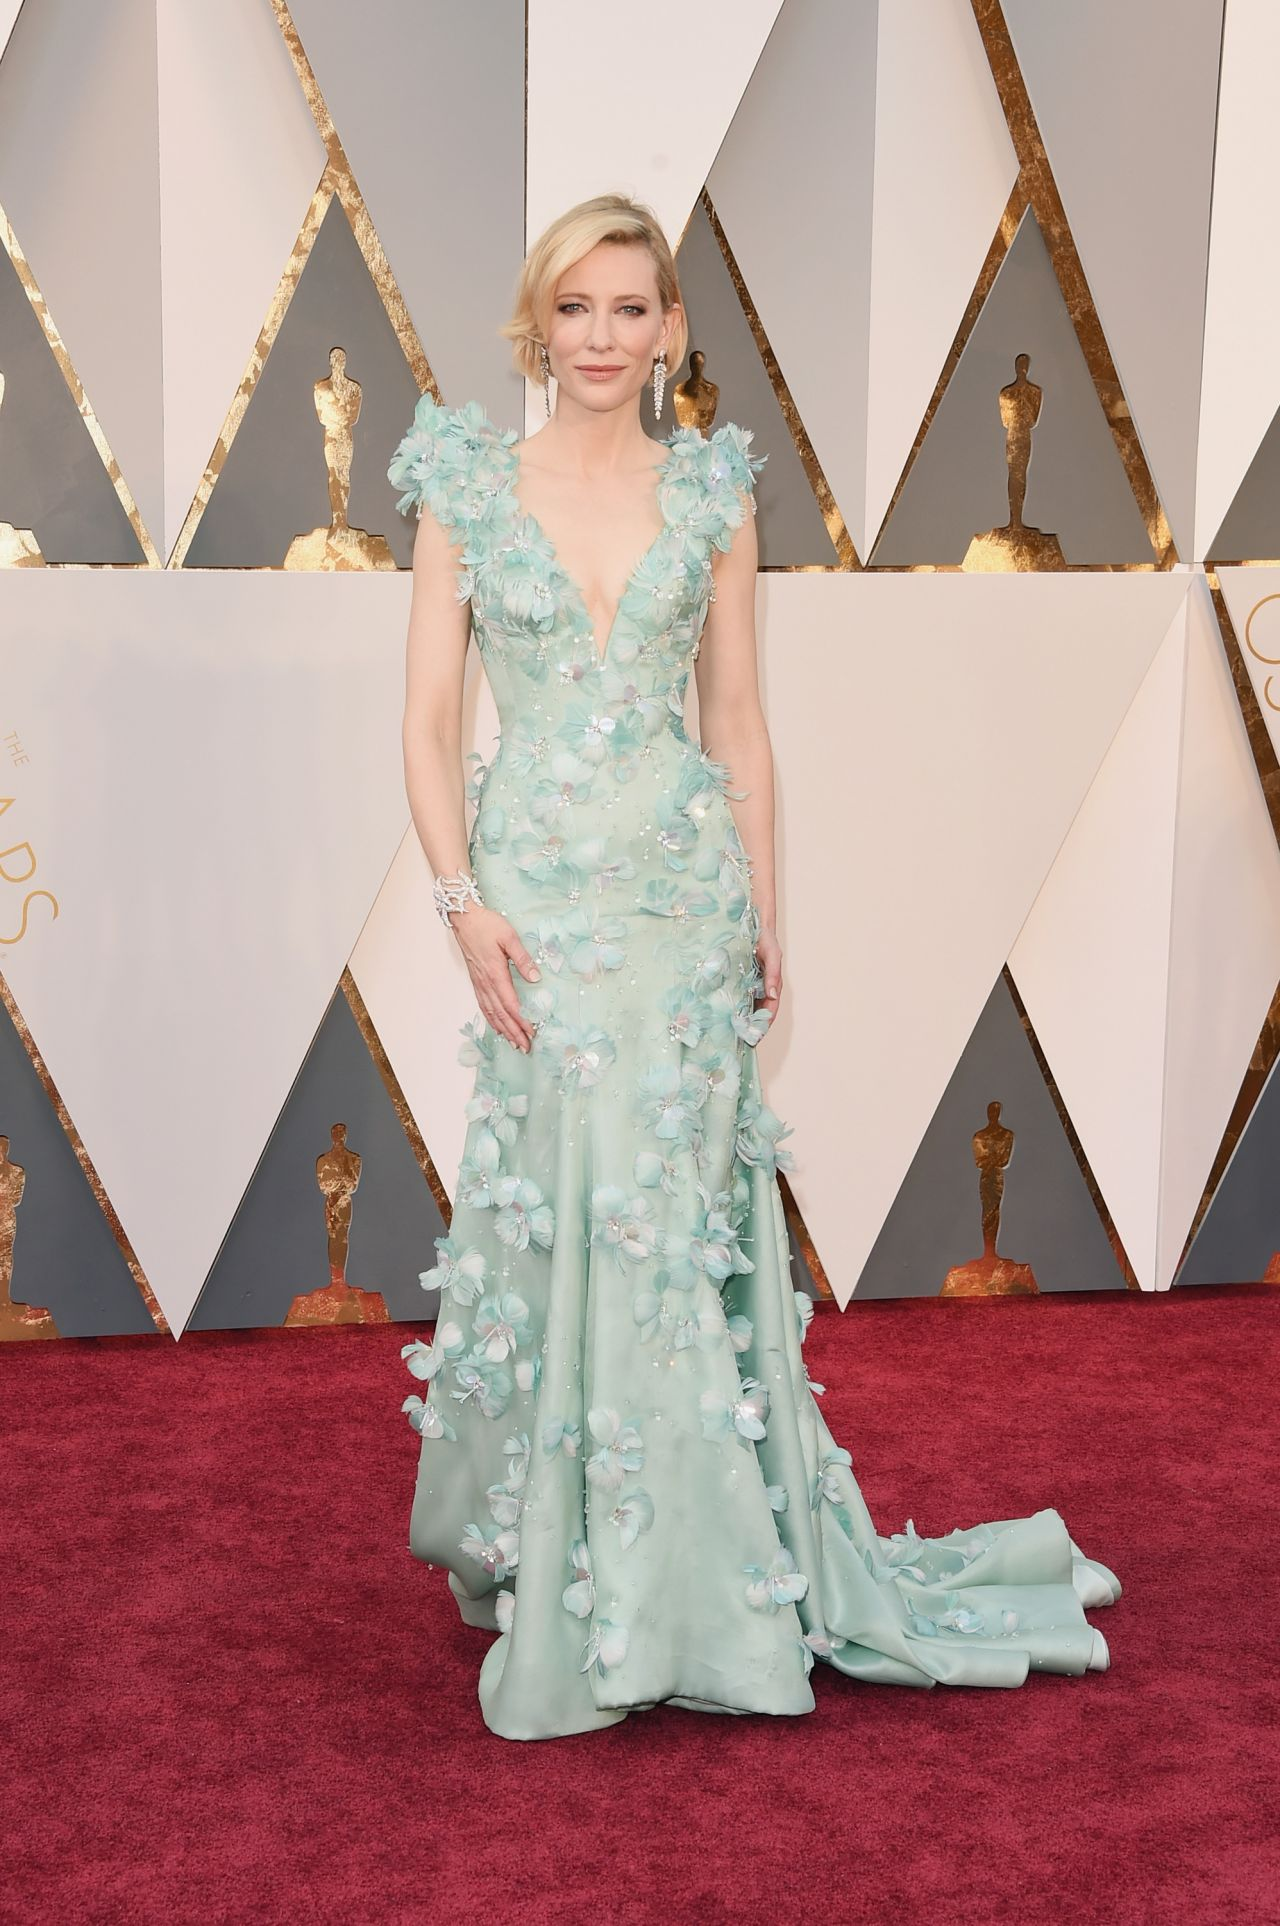 cate-blanchett-oscars-2016-in-hollywood-ca-2-28-2016-2